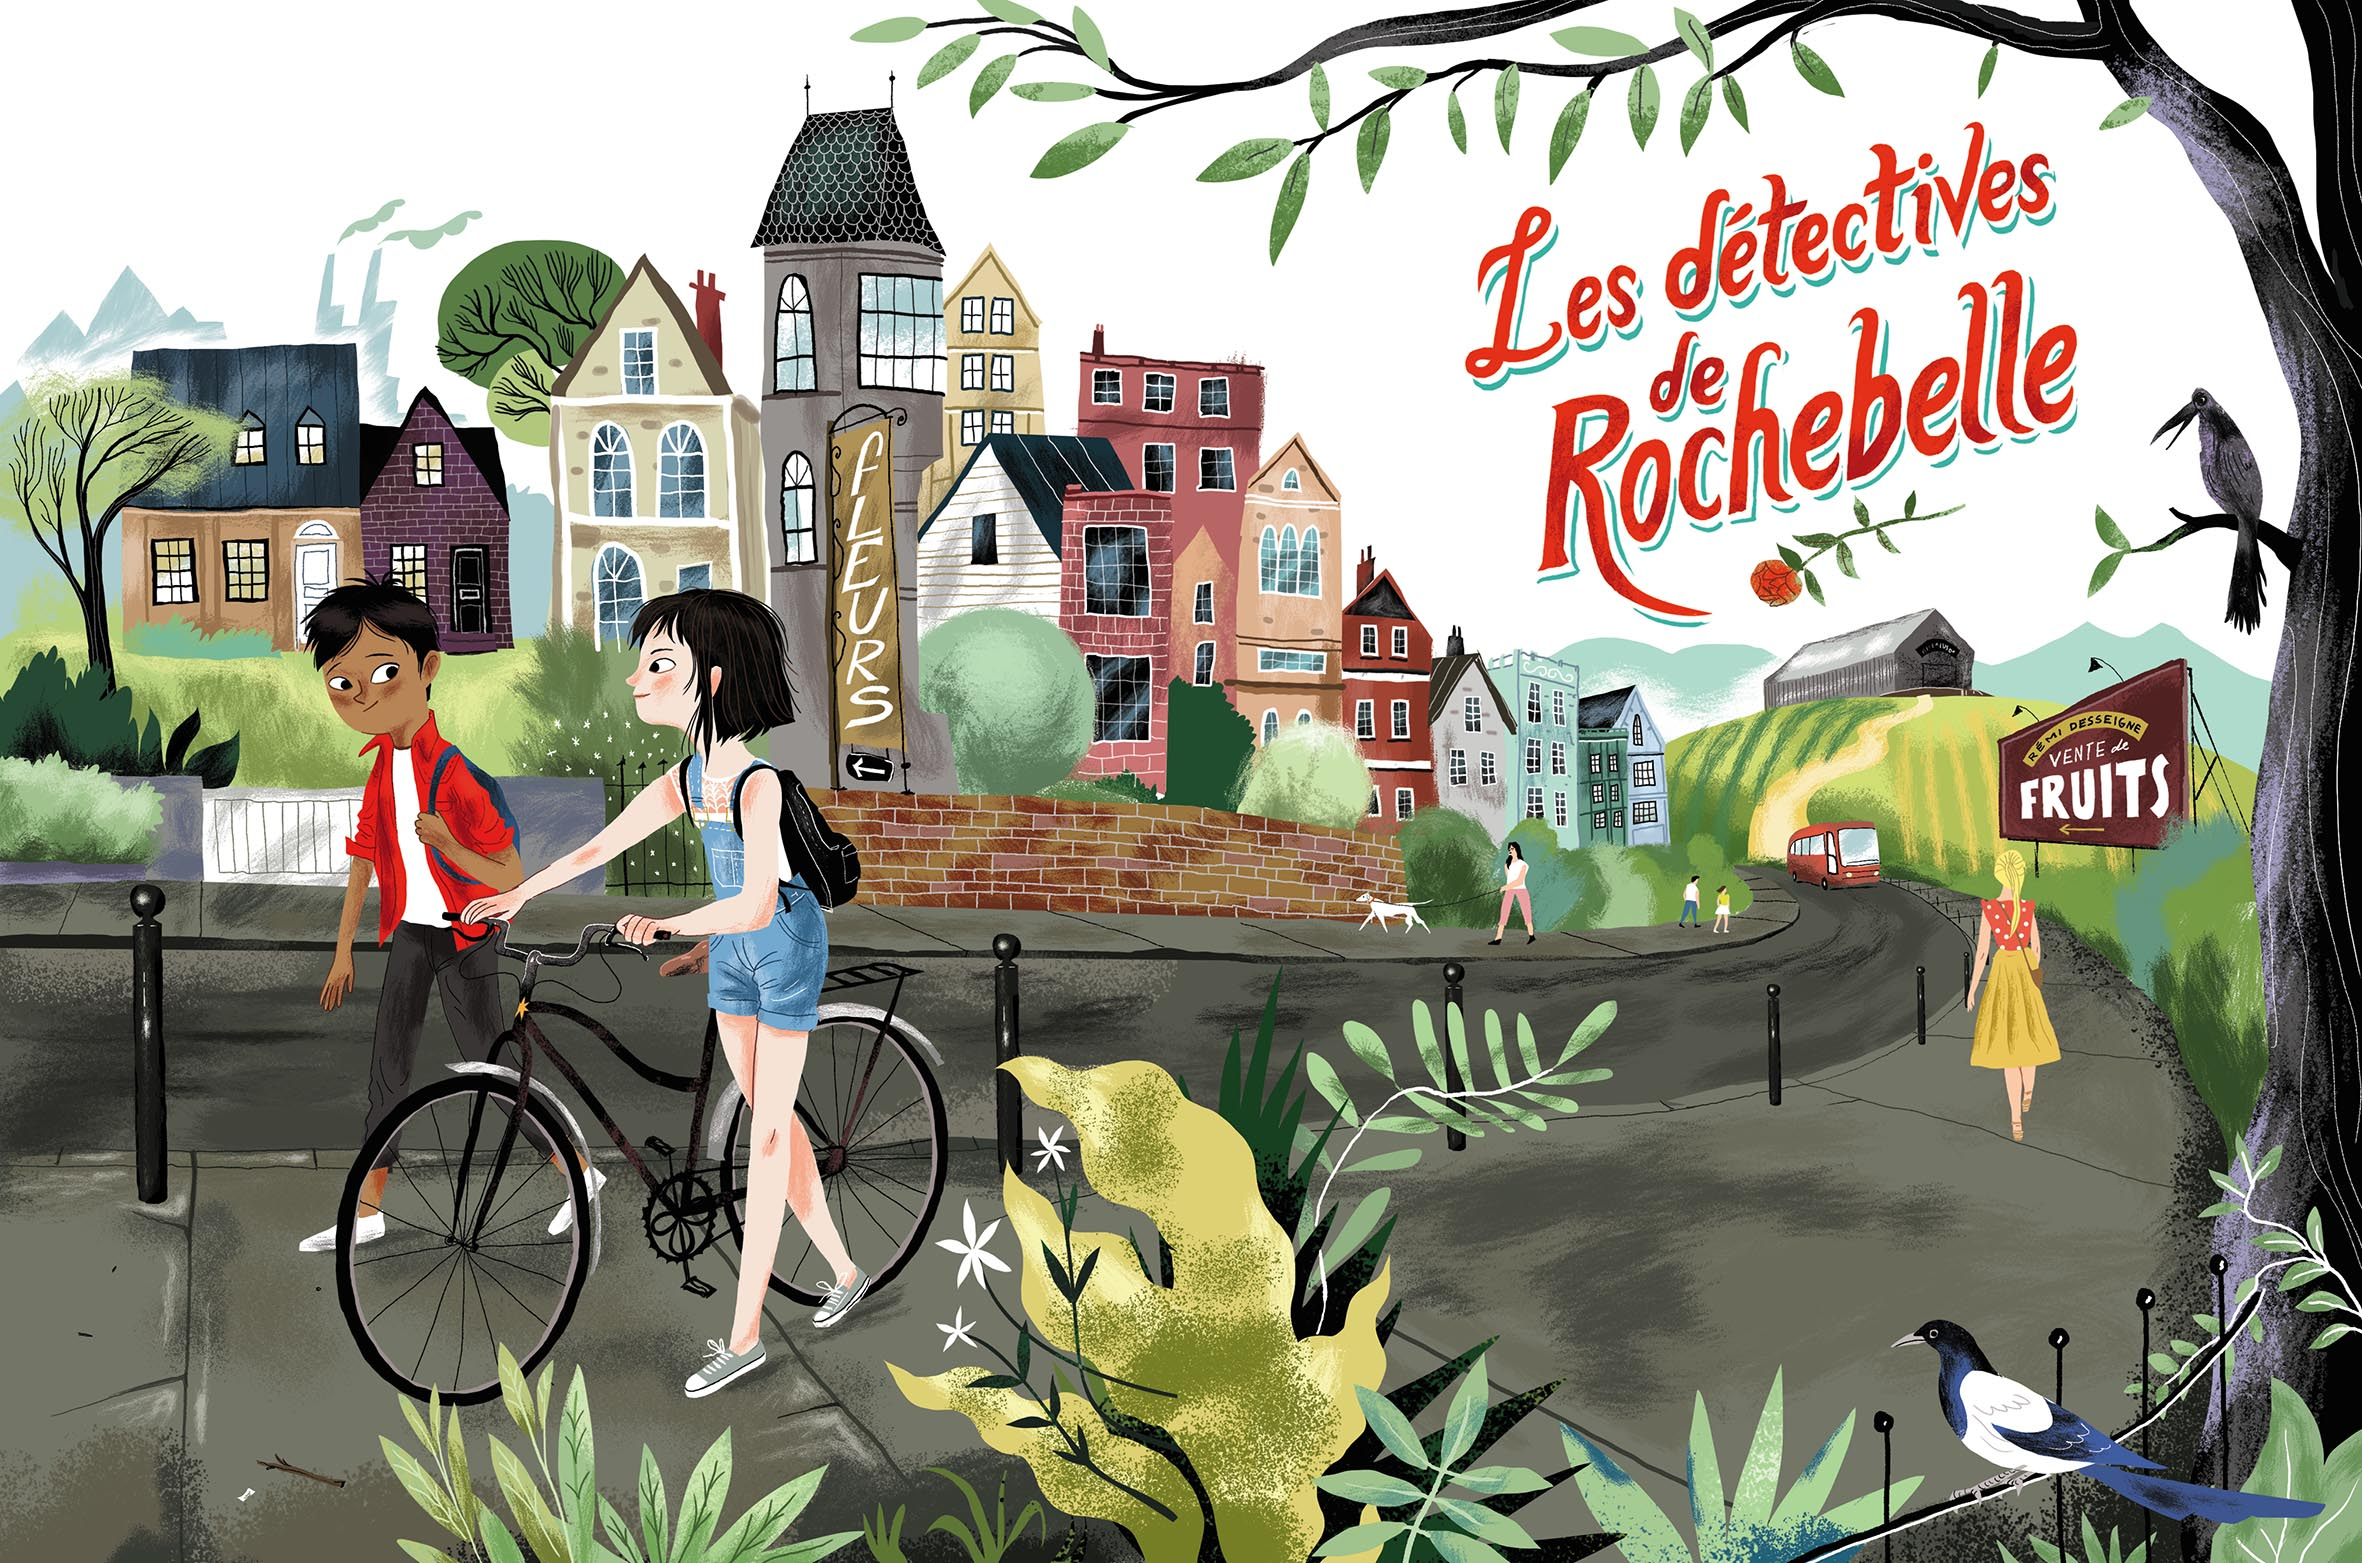 Detectives_Rochebelle